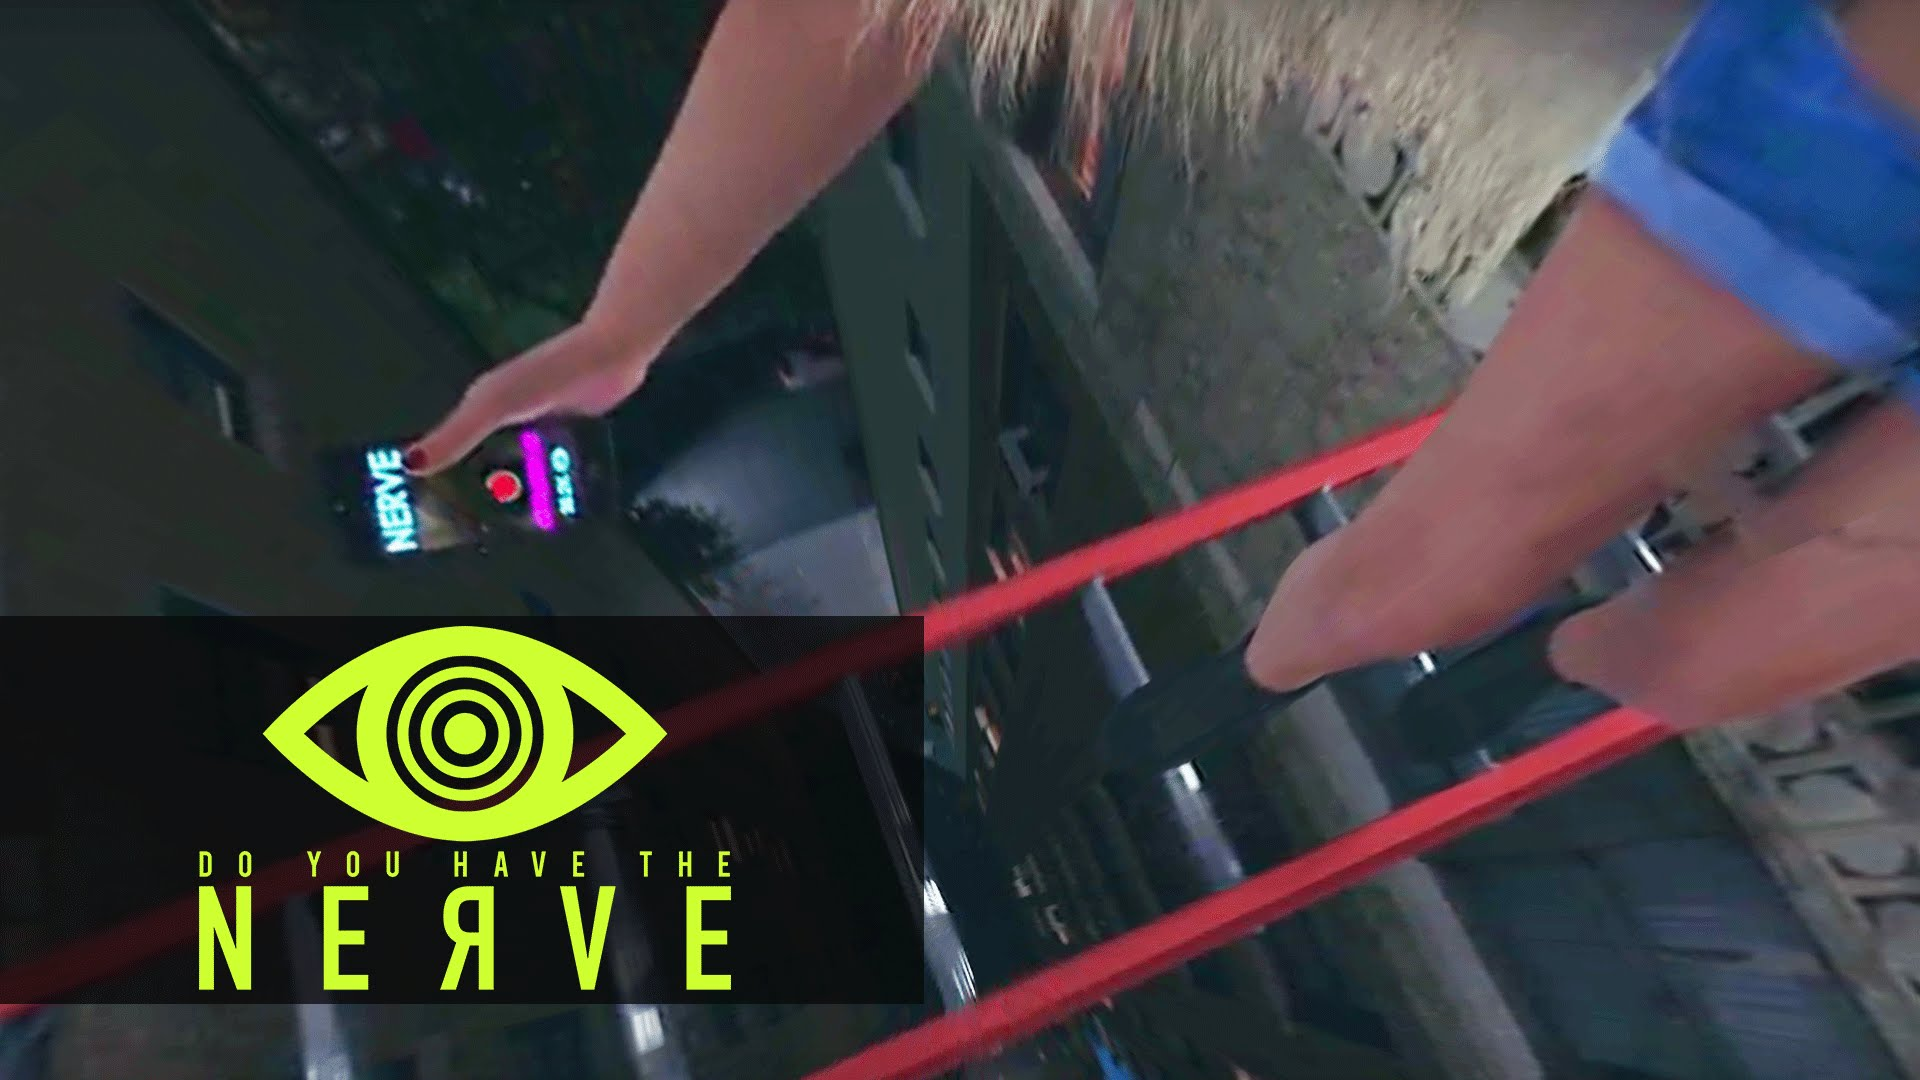 Nerve (2016) 360 Video – VR Dare: Climb Across The Ladder (Syd)